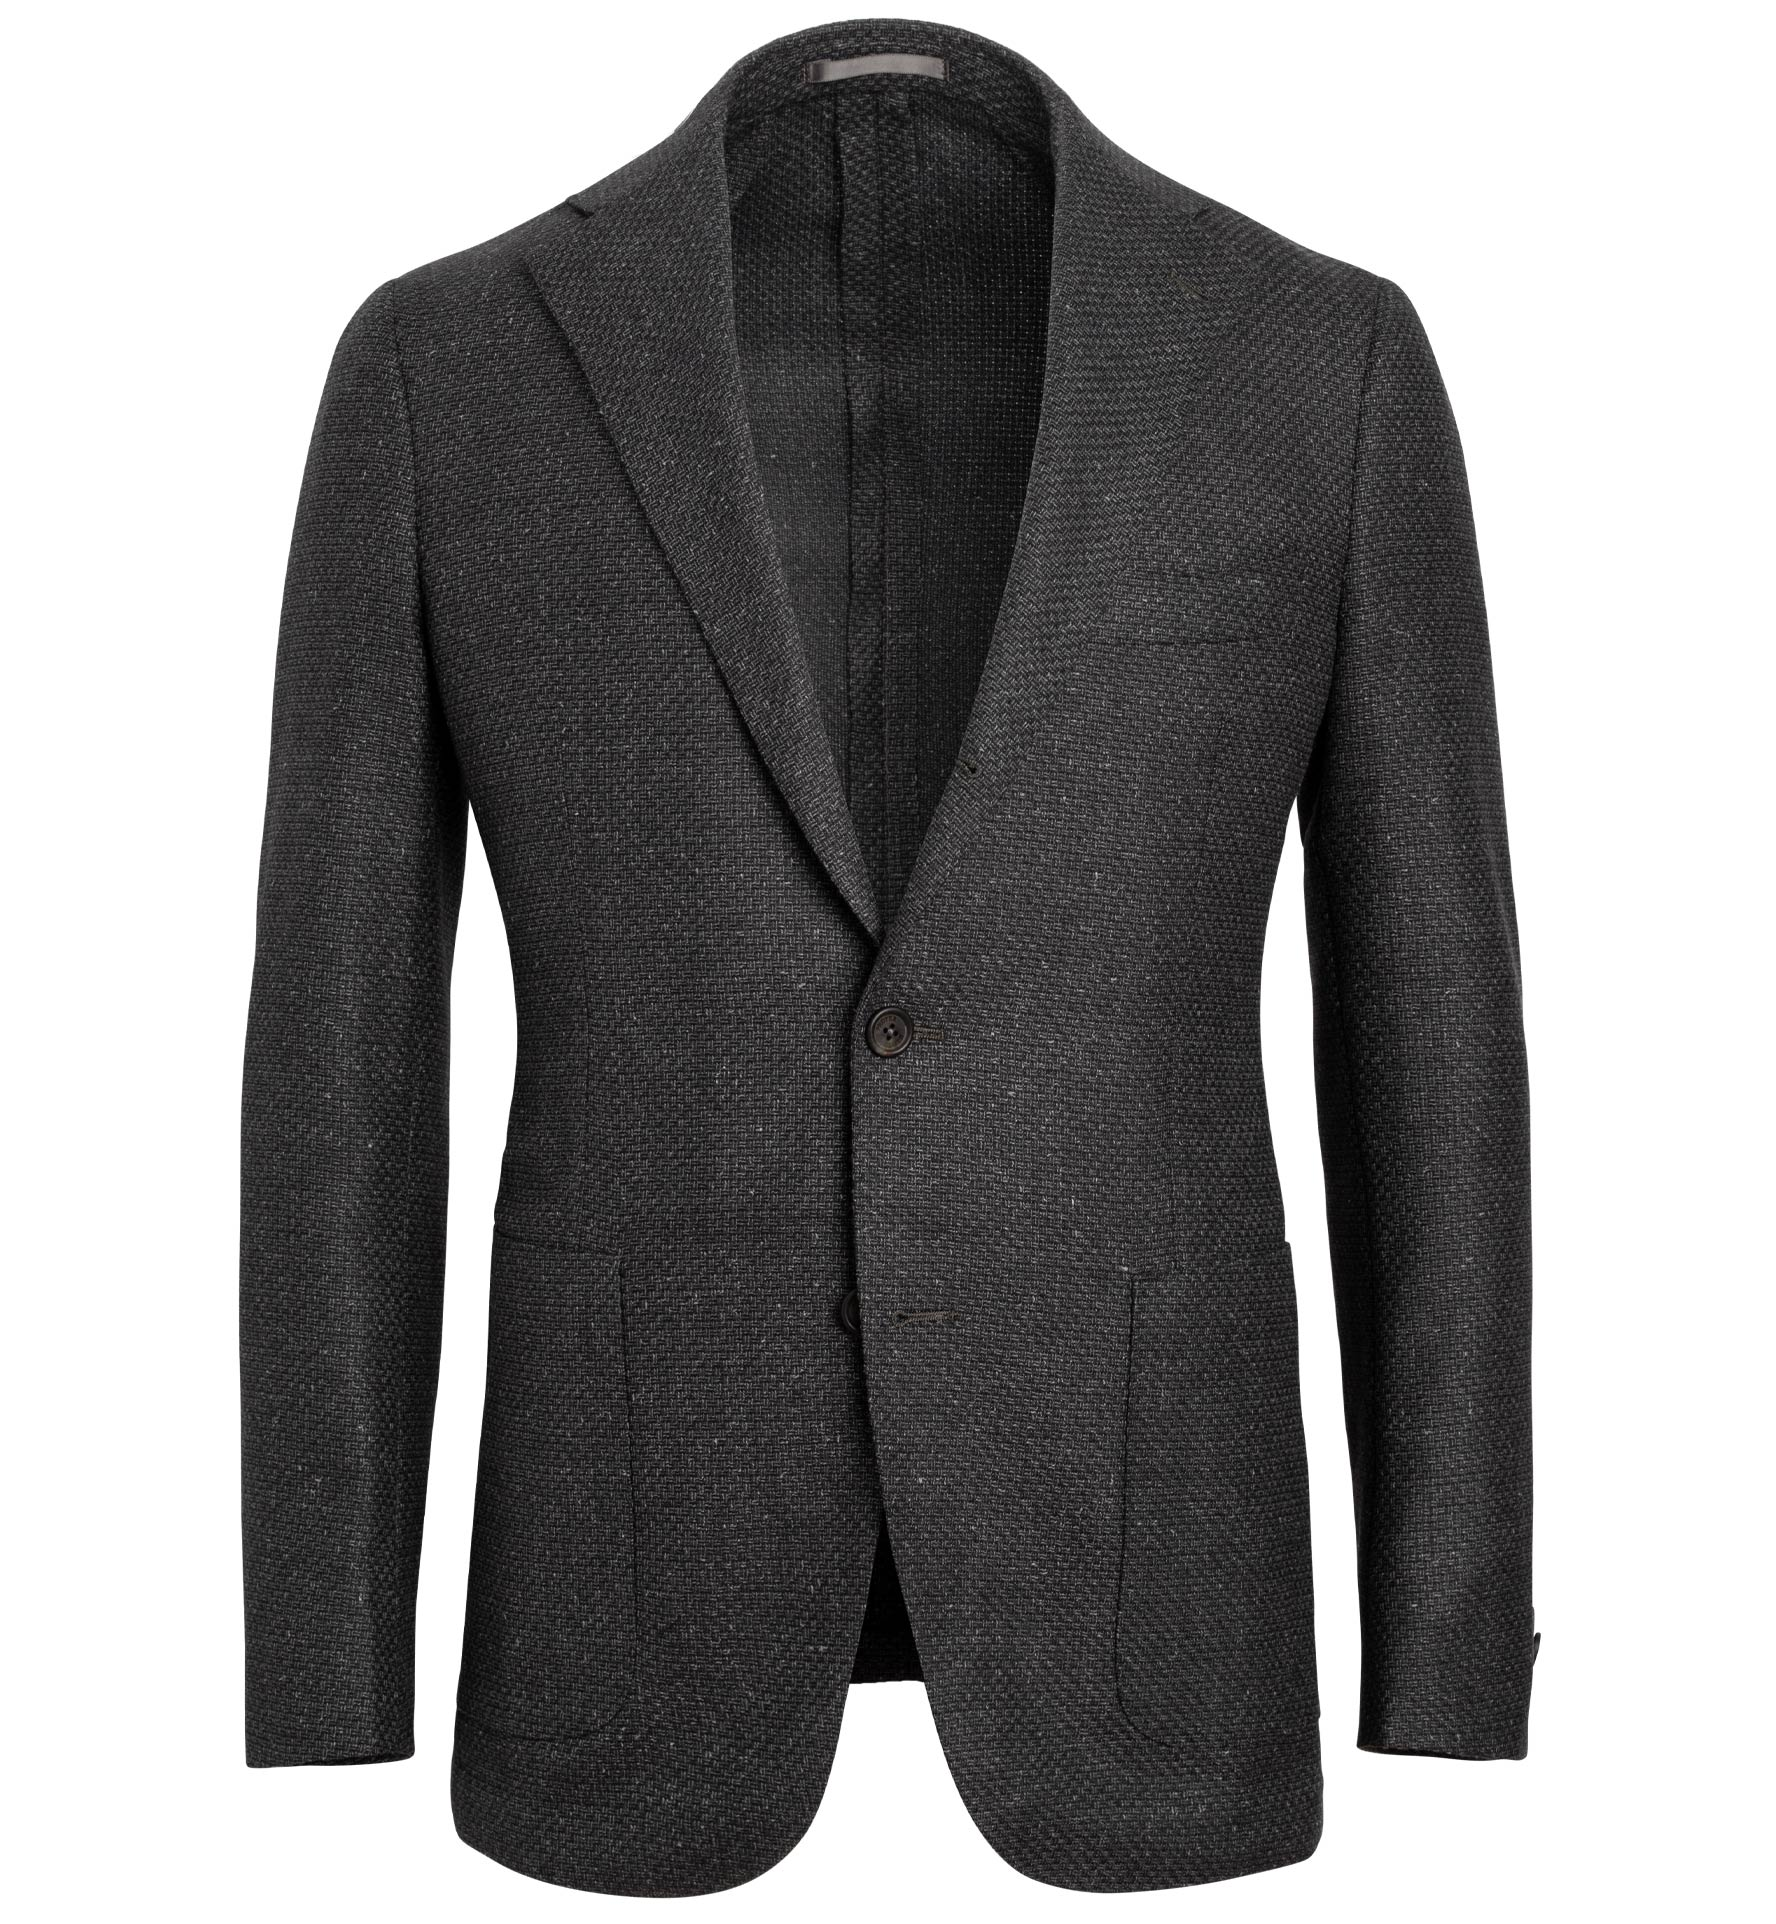 Zoom Image of Bedford Dark Grey Melange Basketweave Jacket